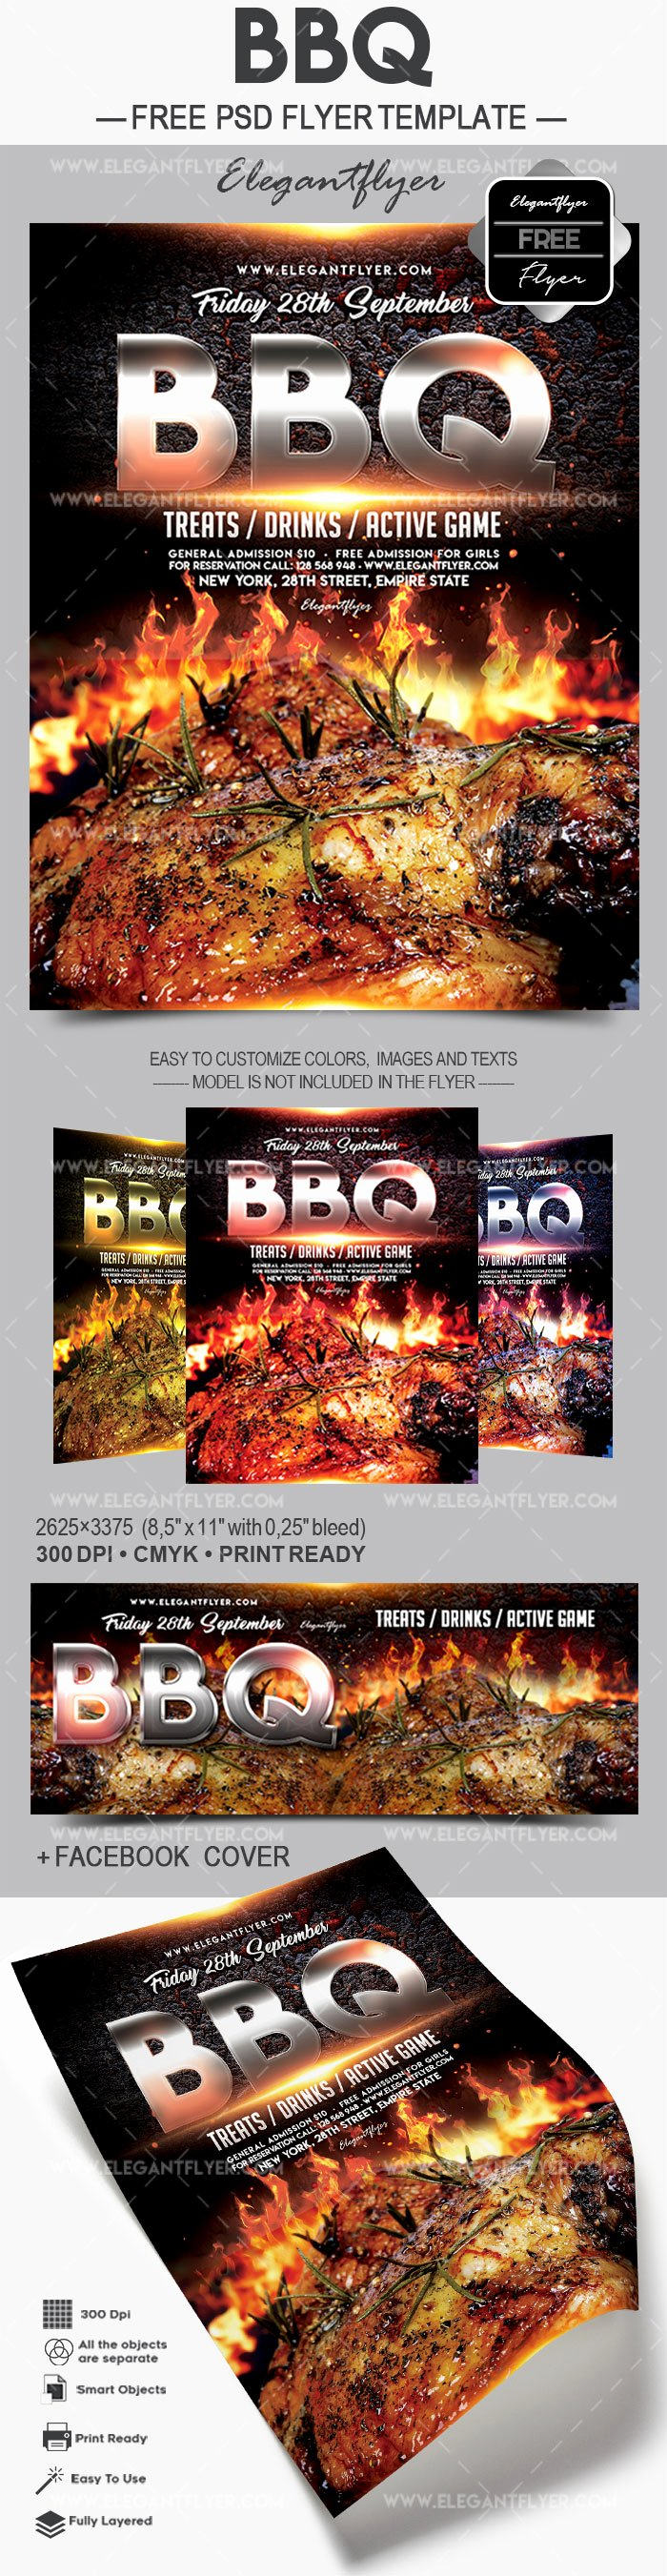 Free Bbq Flyer Template New Bbq – Free Flyer Psd Template – by Elegantflyer